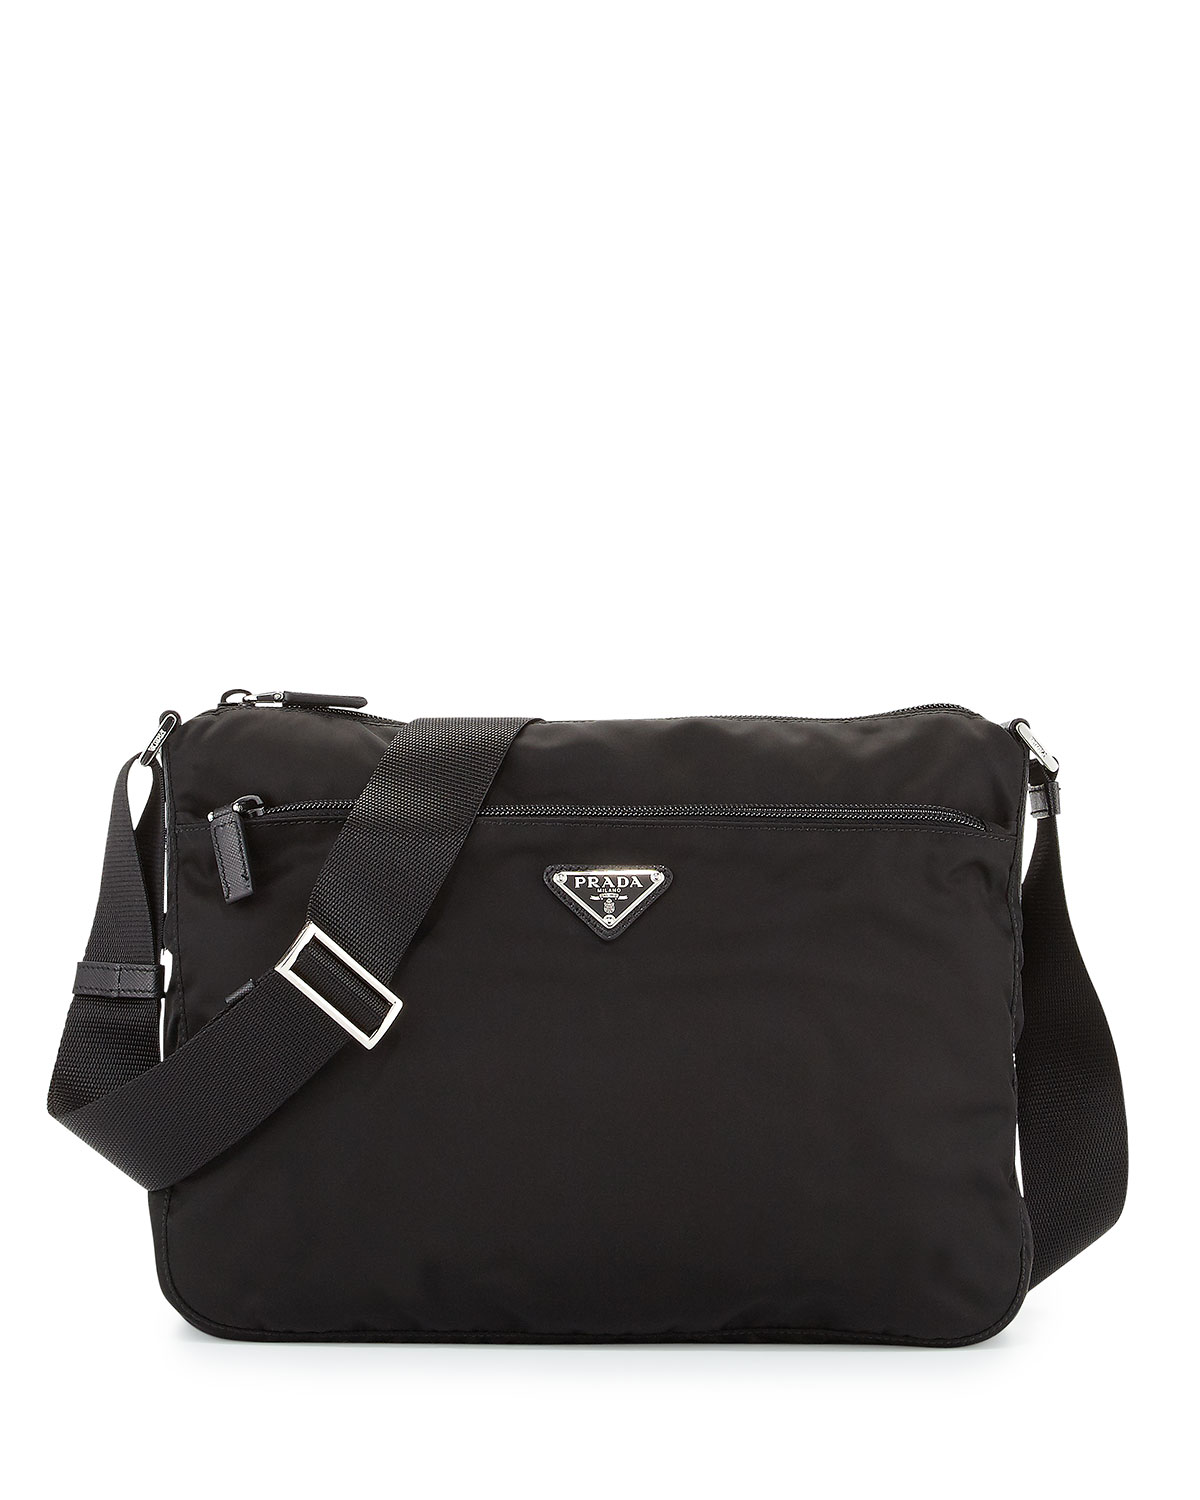 32e385c65f6f Prada Large Nylon Crossbody Bag, Black (Nero) | Neiman Marcus